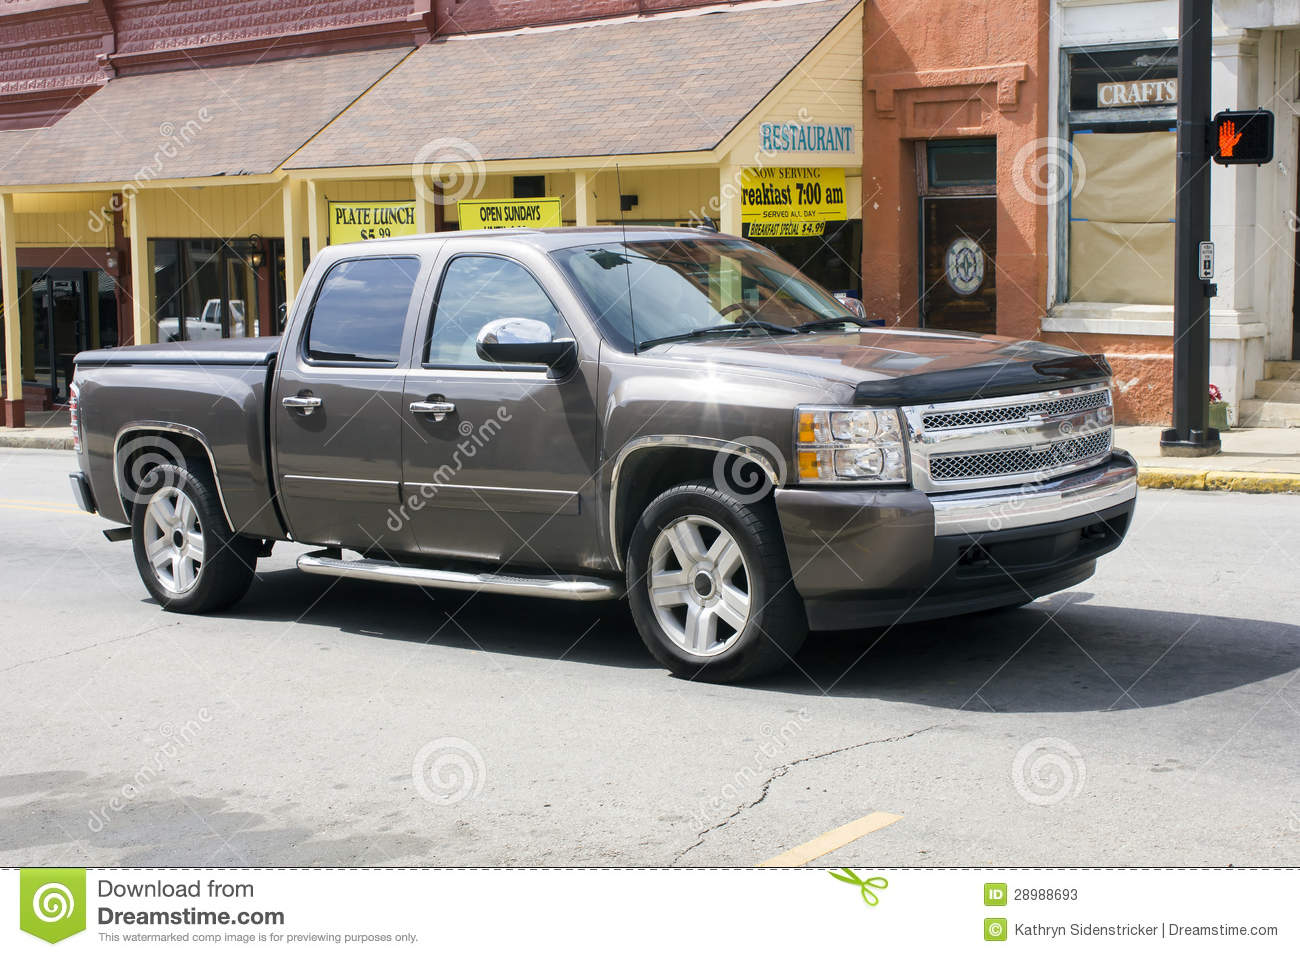 late model chevy pickup truck 2013 stock image image 28988693. Black Bedroom Furniture Sets. Home Design Ideas